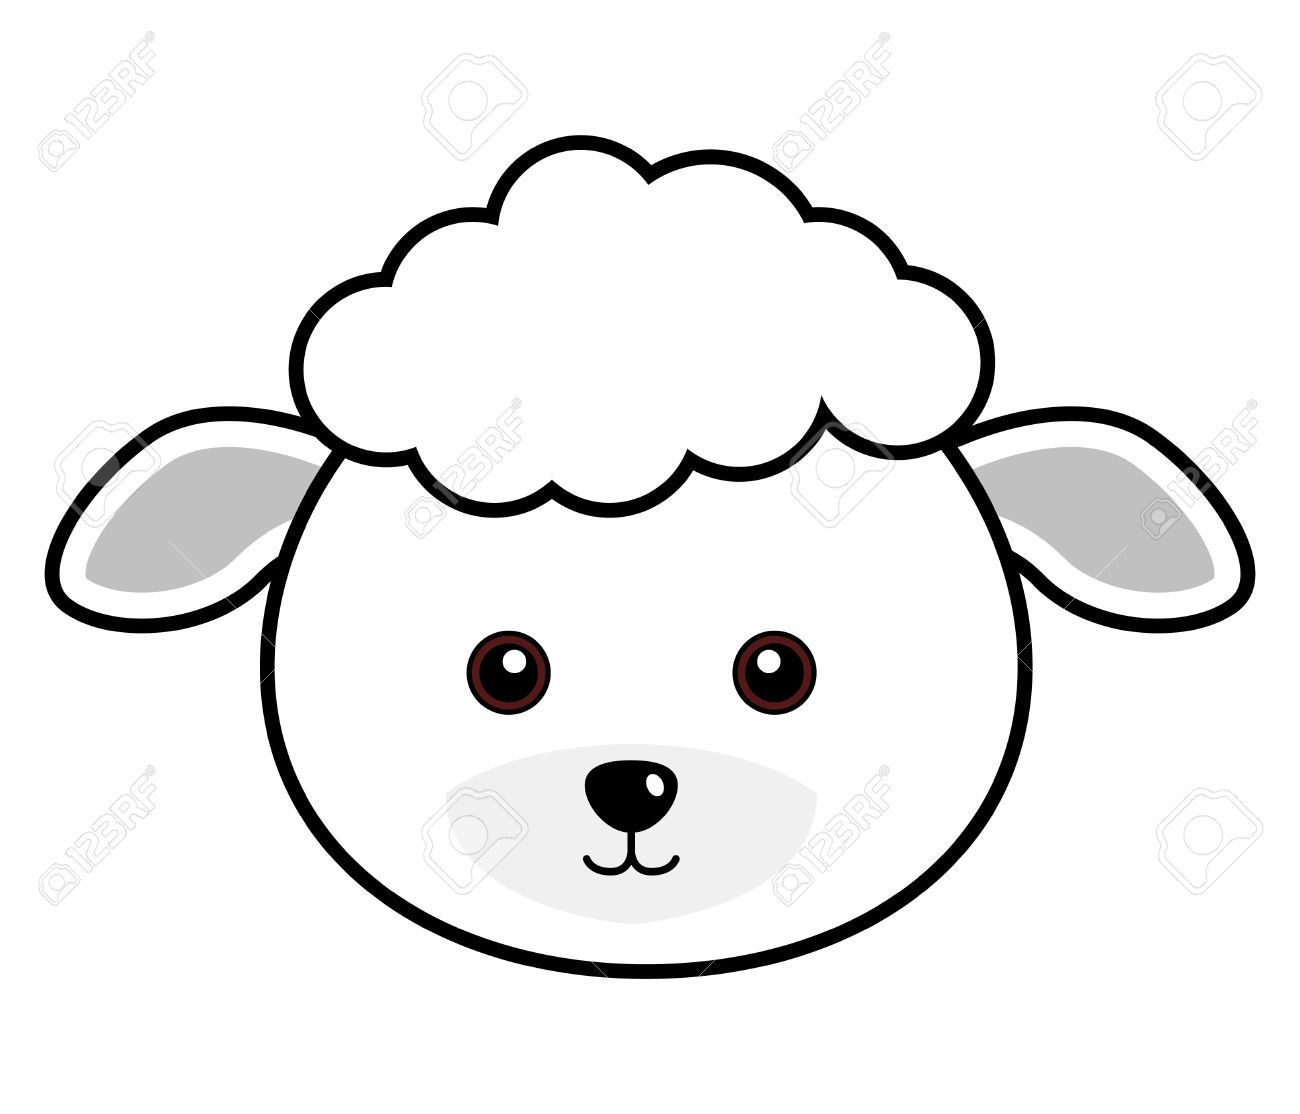 Sheep Faces Cute 3 Image By Sheep Sheep Face Cute Sheep Sheep